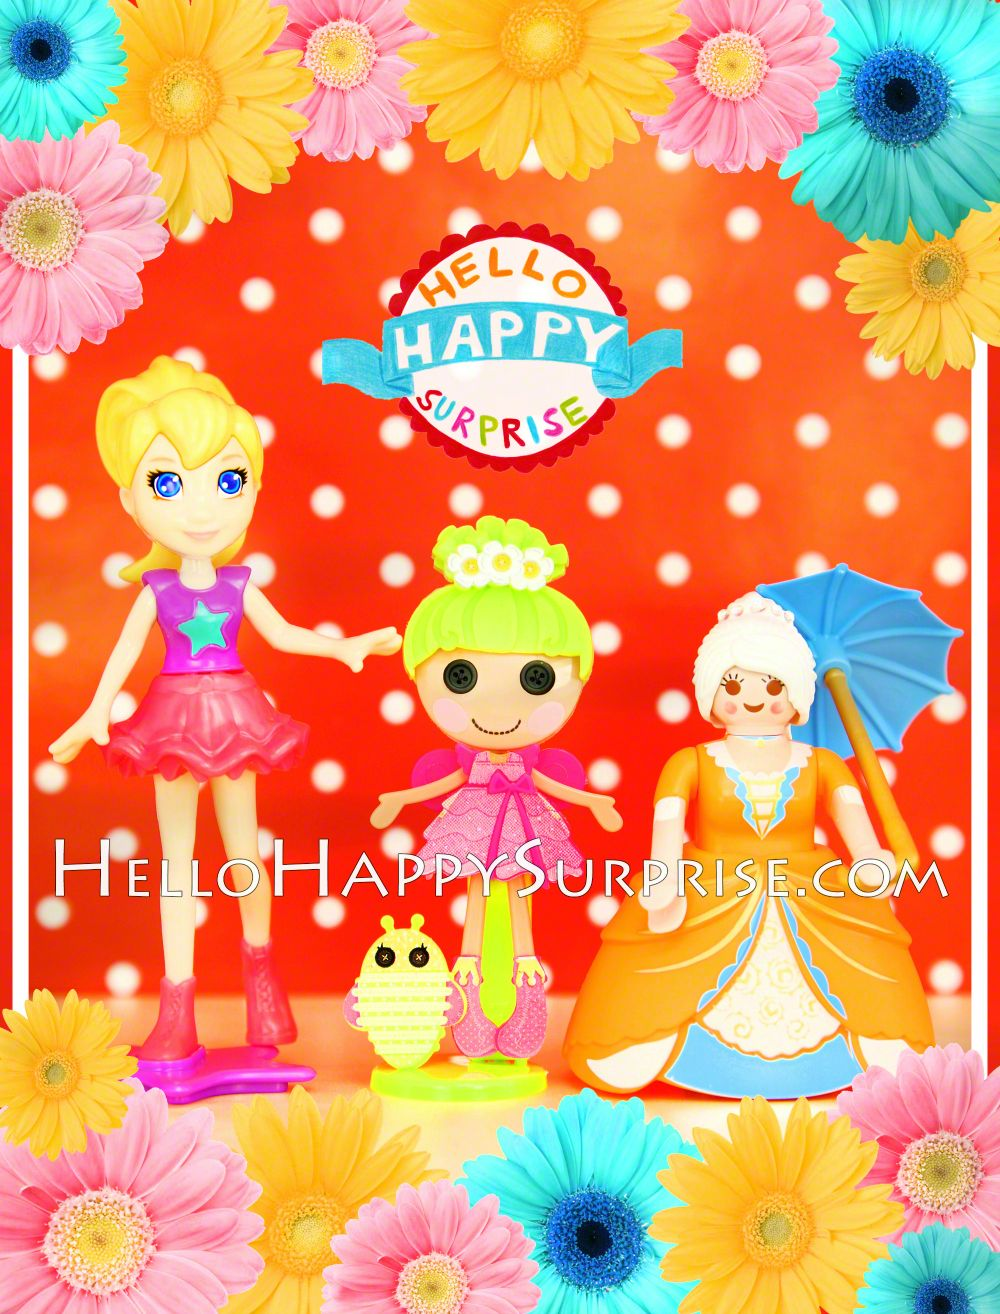 Cute Dolls! Polly Pocket, Lalaloopsy and Playmobil doll  www.HelloHappySurprise.com